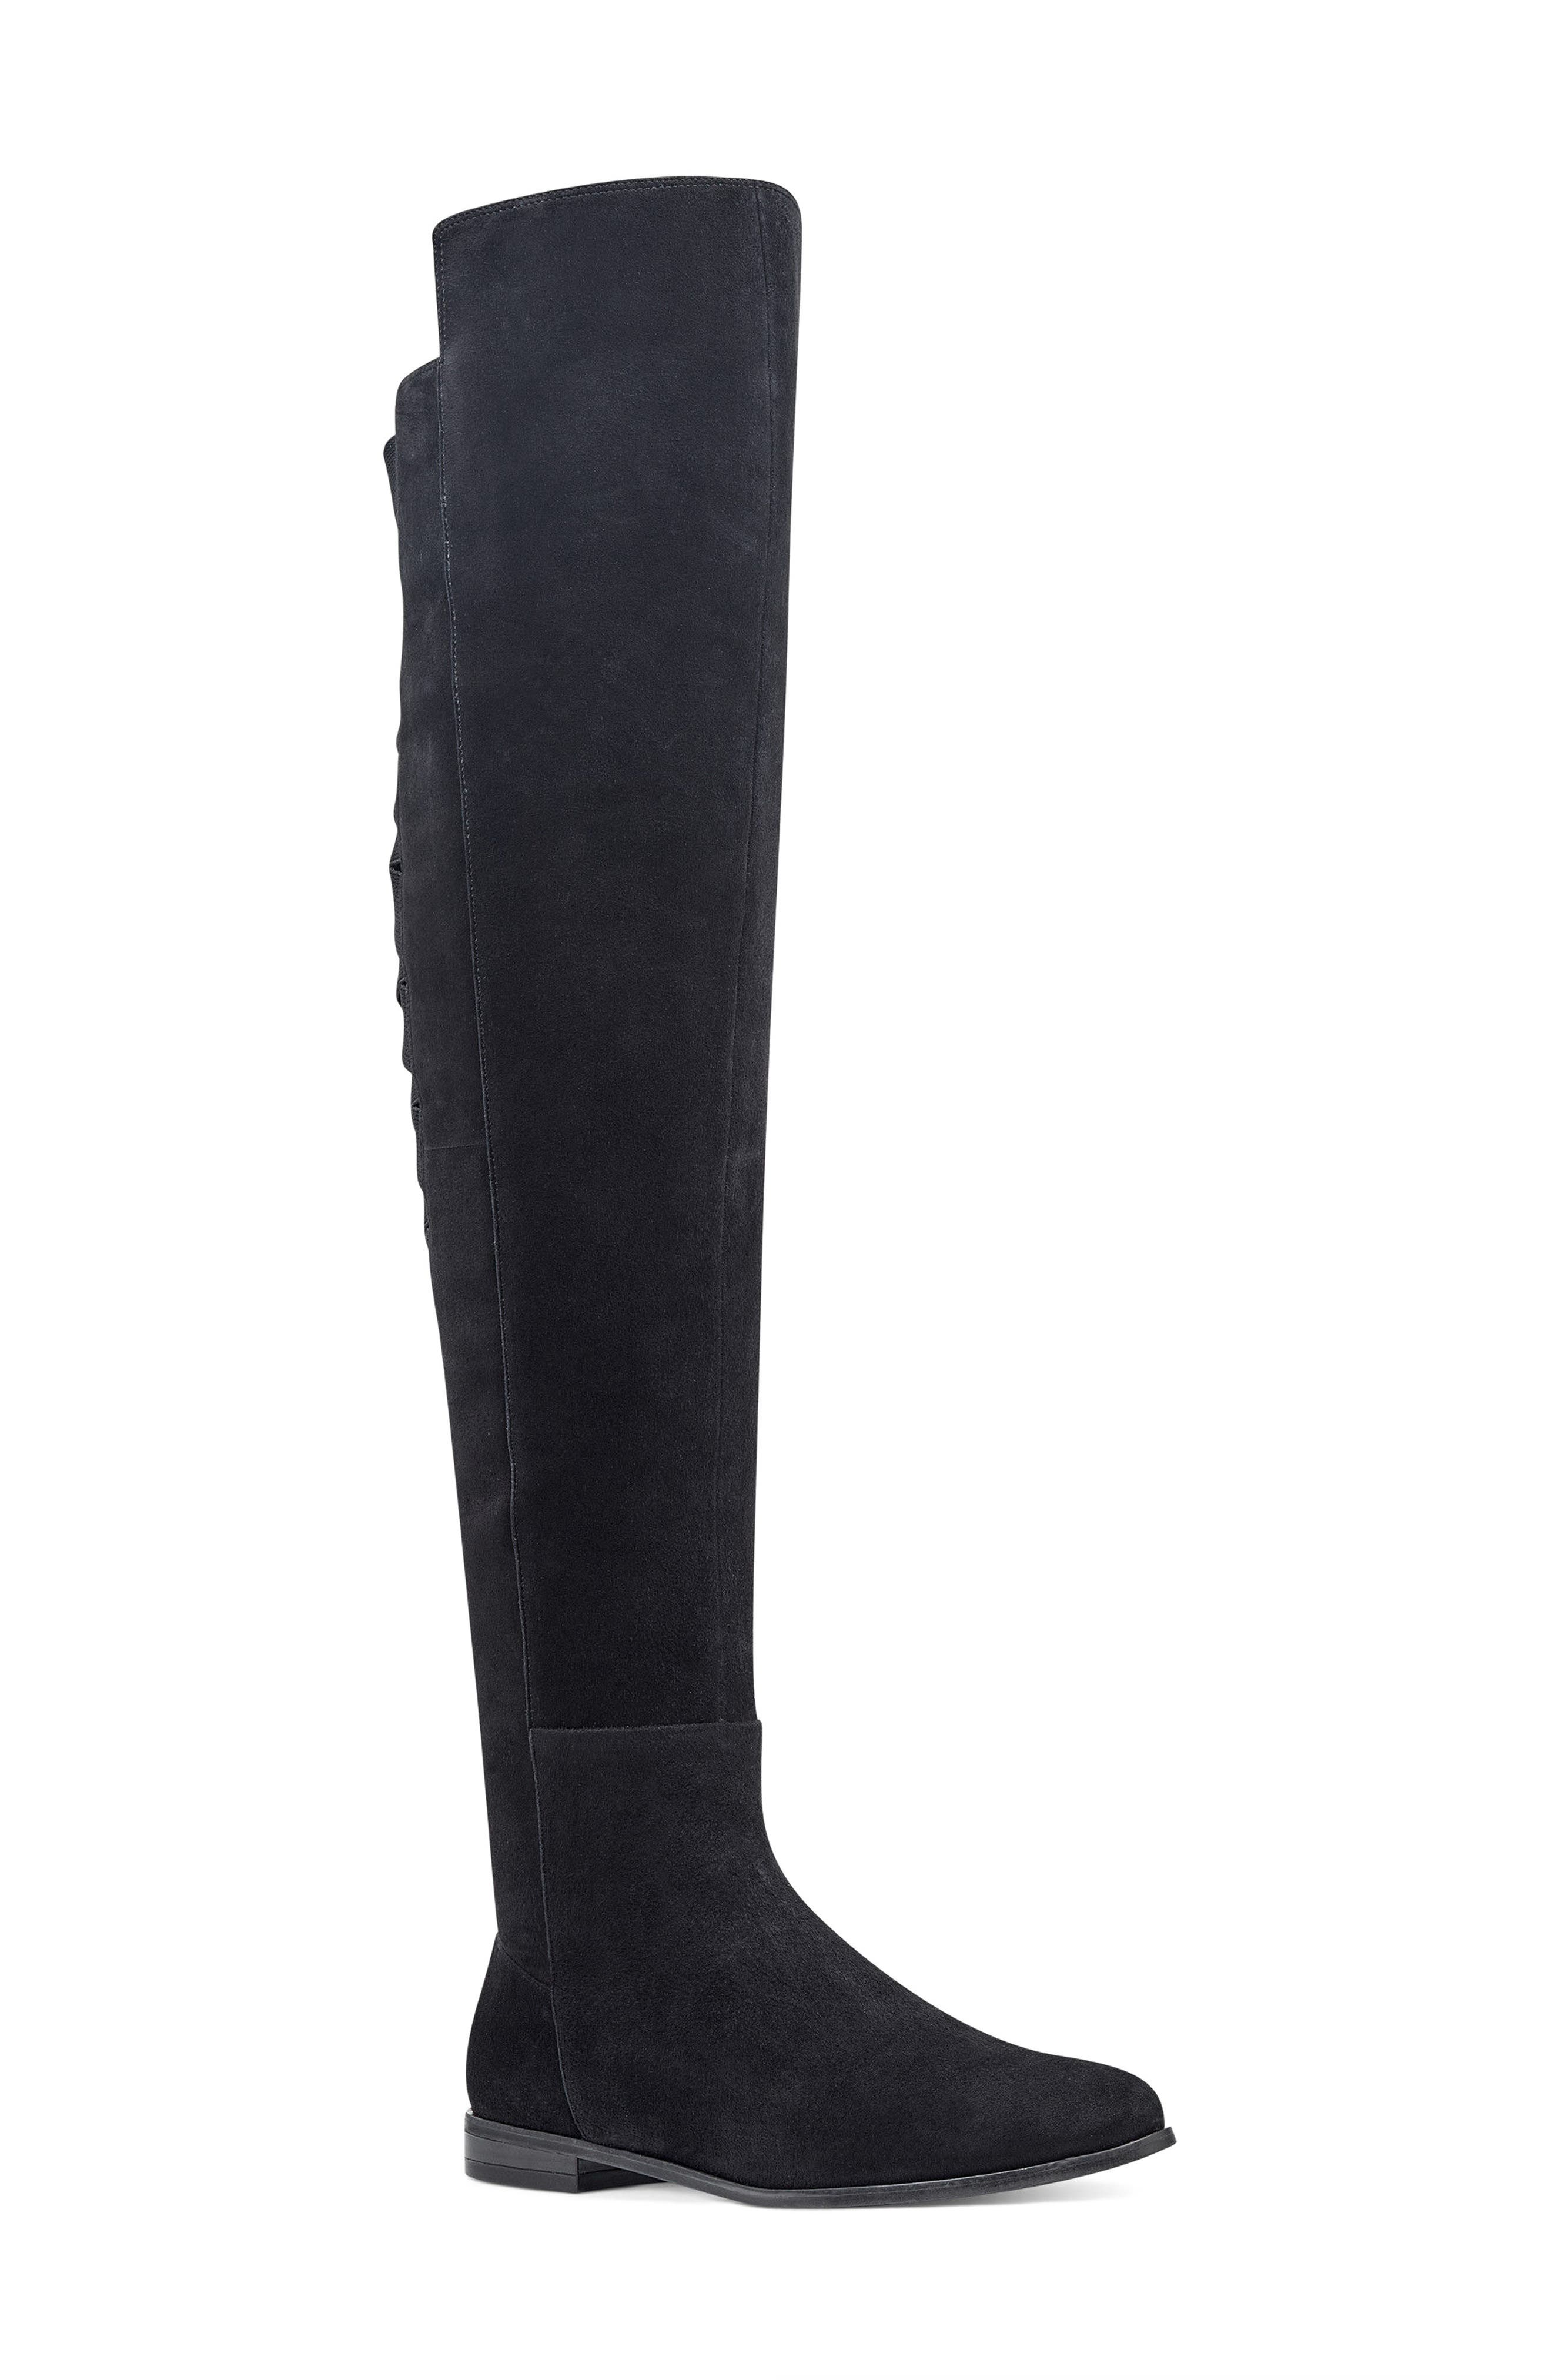 Eltynn Over the Knee Boot,                             Main thumbnail 1, color,                             001